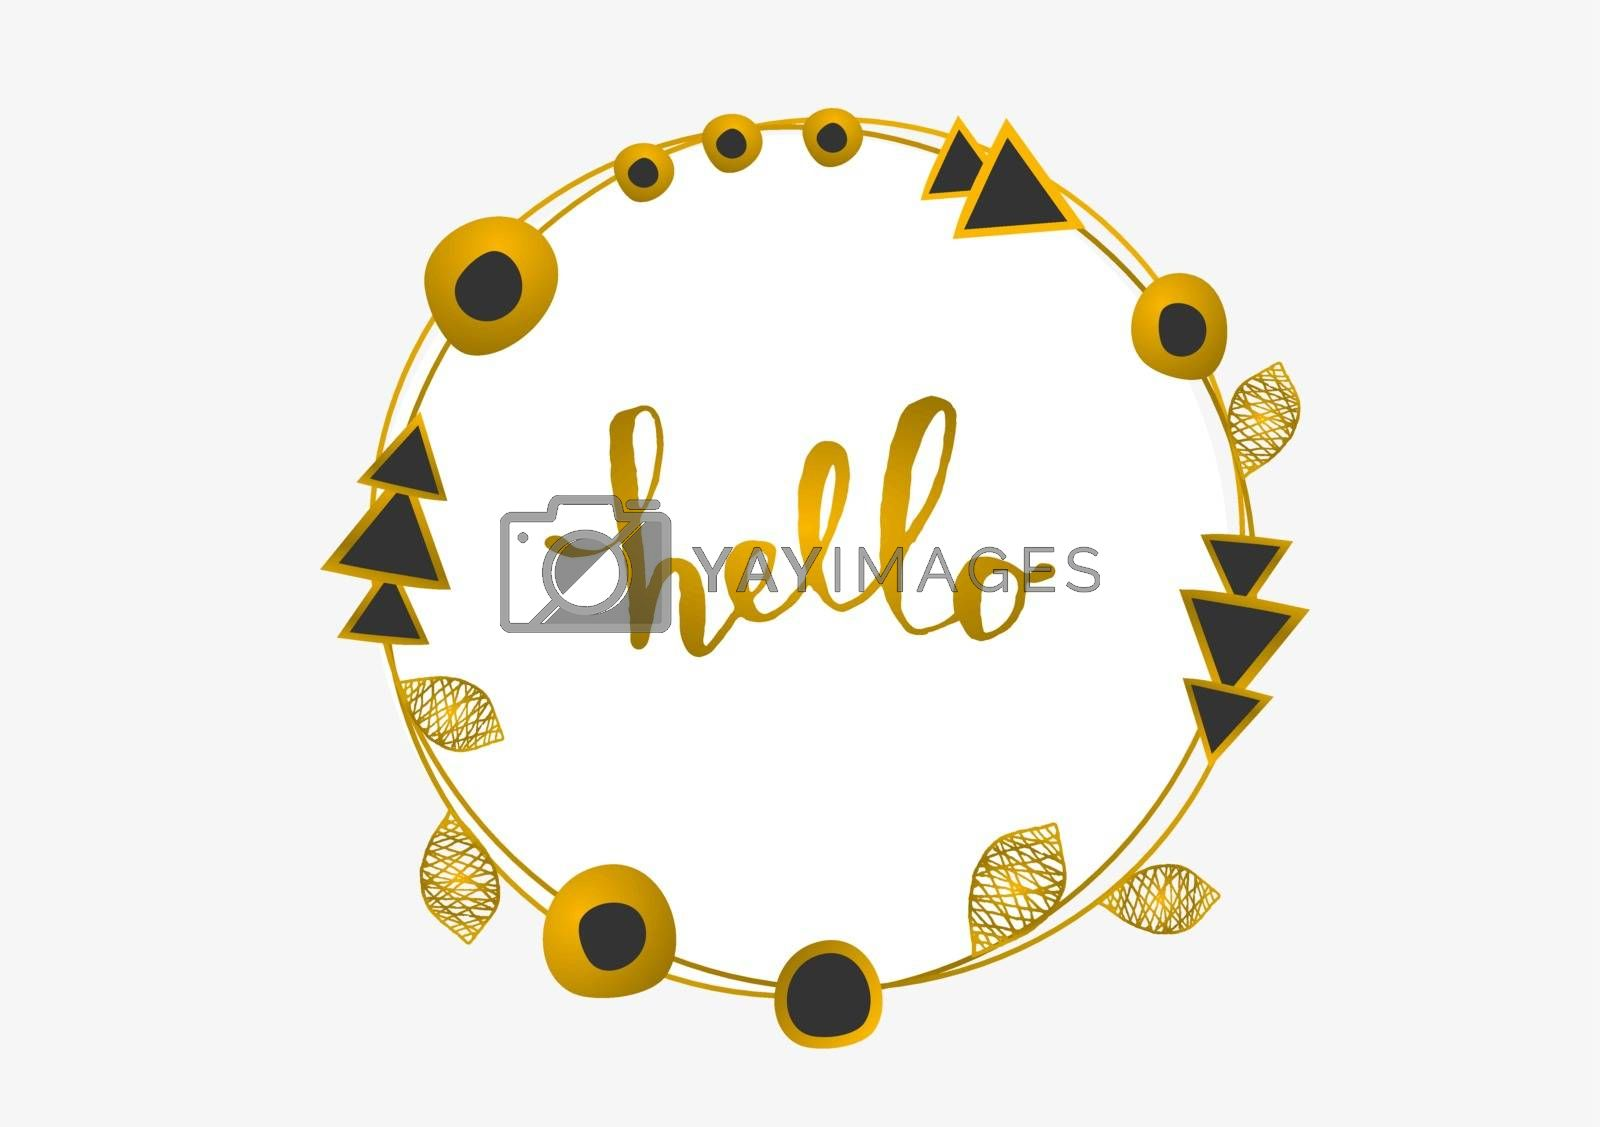 Tribal design round frame in gold and black on white background. Geometric design elements, ornate leaves and beads. Hand lettered text Hello. Elegant invitation/ greeting card design.